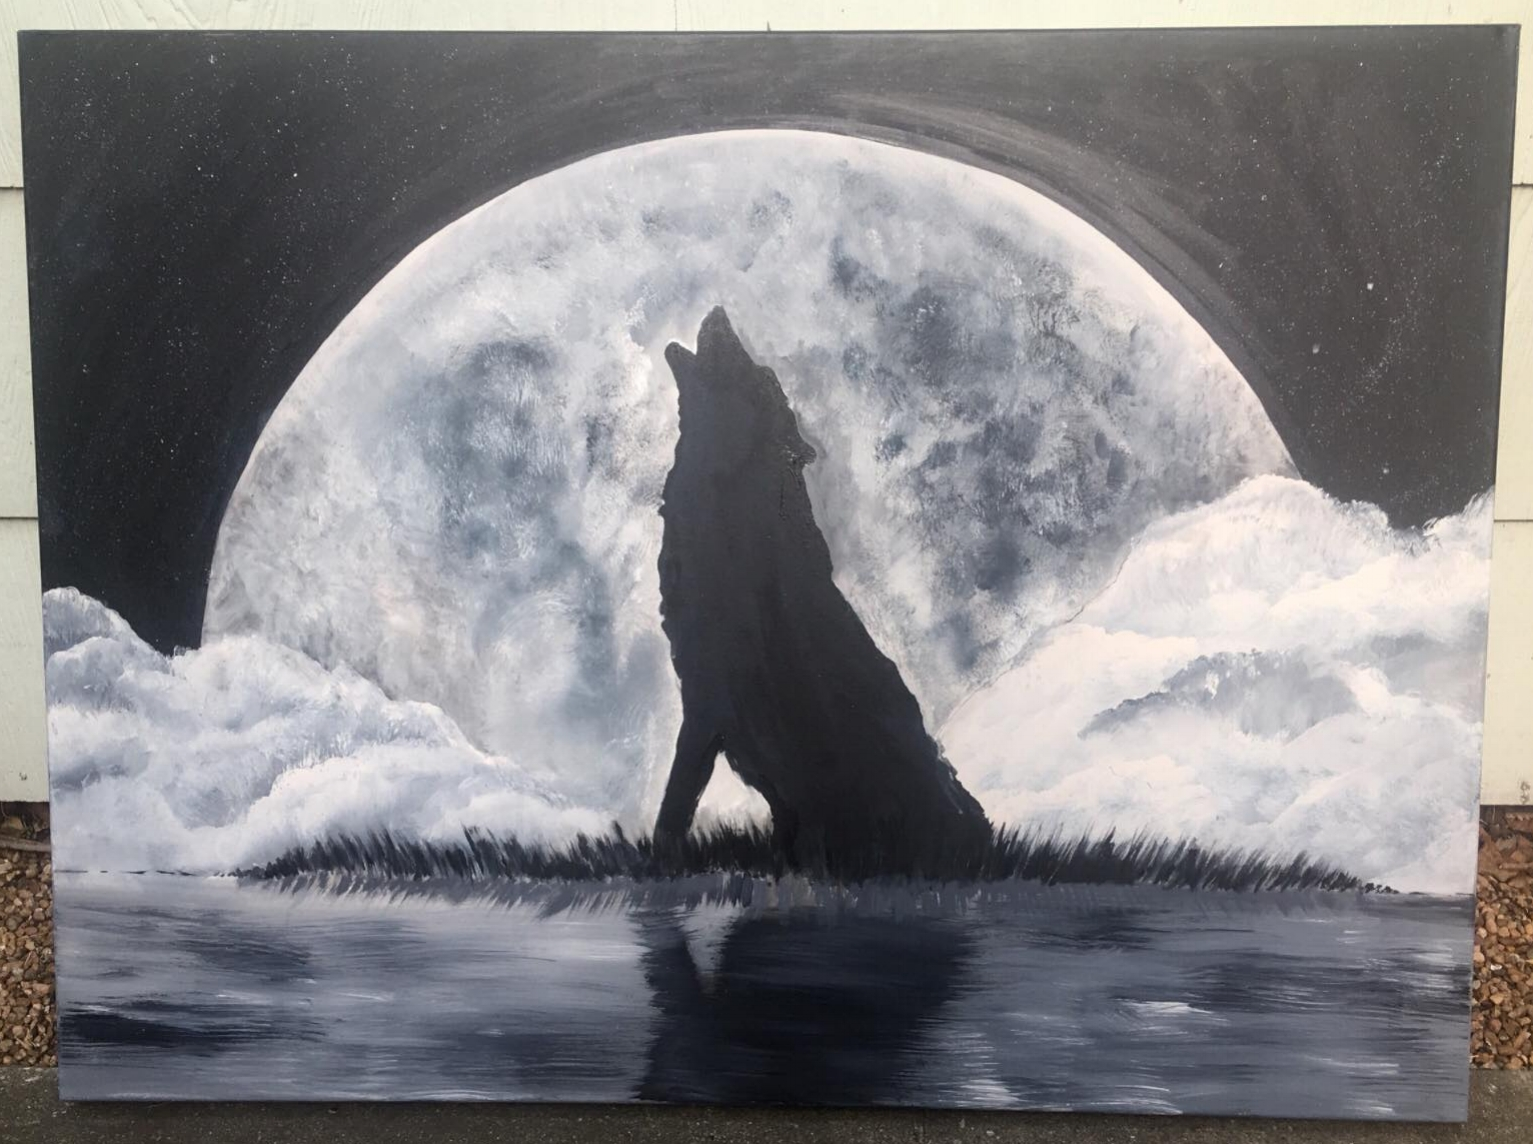 Wolf Pack Painting - Black and White Art Houston Texas.jpg